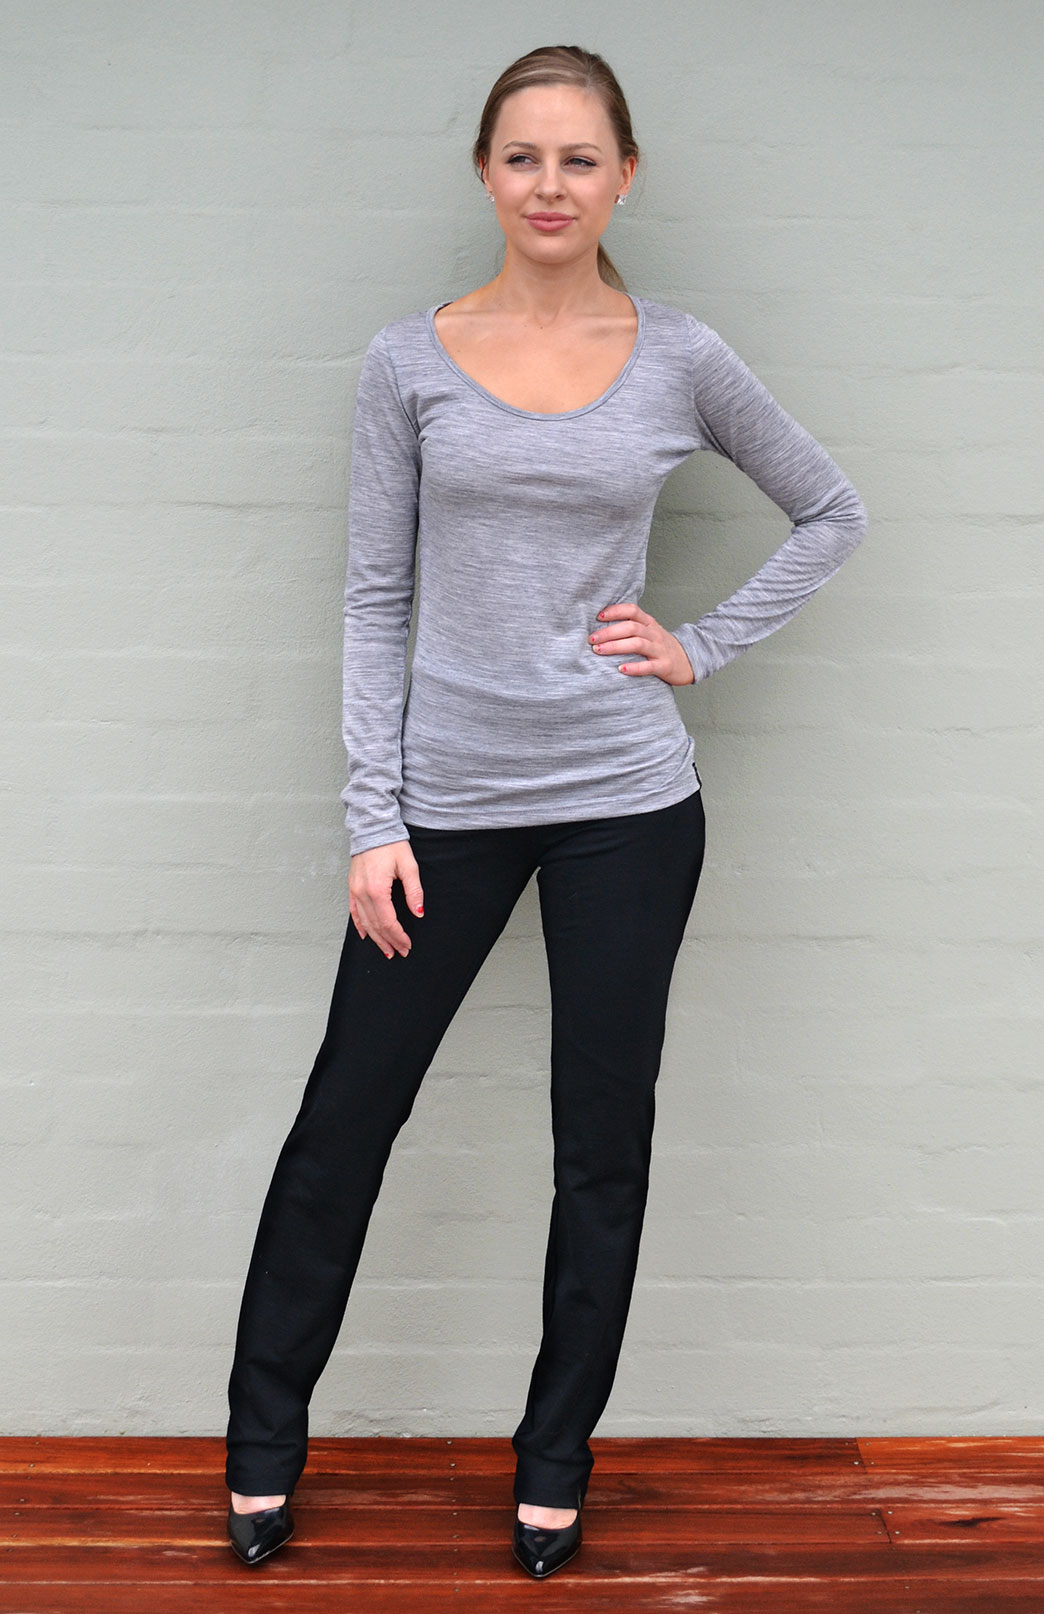 Straight Leg Pants - Women's Black Lightweight Wool Straight Leg Pants with wide waistband - Smitten Merino Tasmania Australia